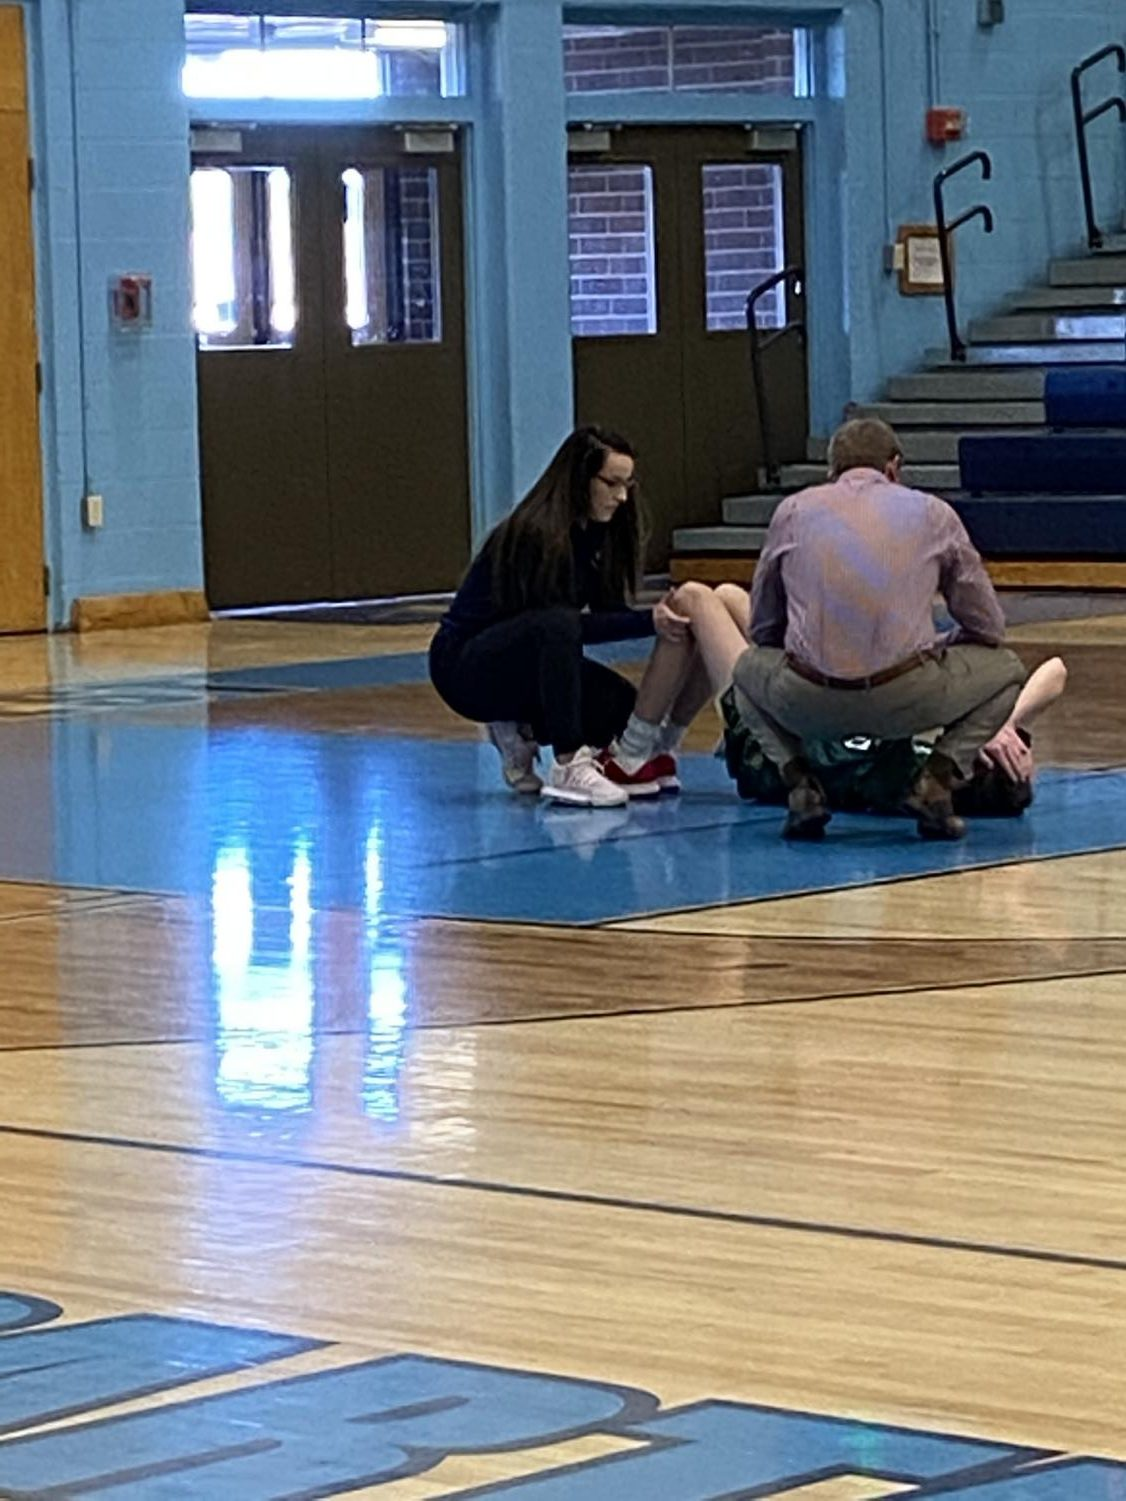 Greeley West trainer Ali Curtis works with a Mountain Vista student who appeared to hyper-extend his knee during the JV basketball on Saturday.